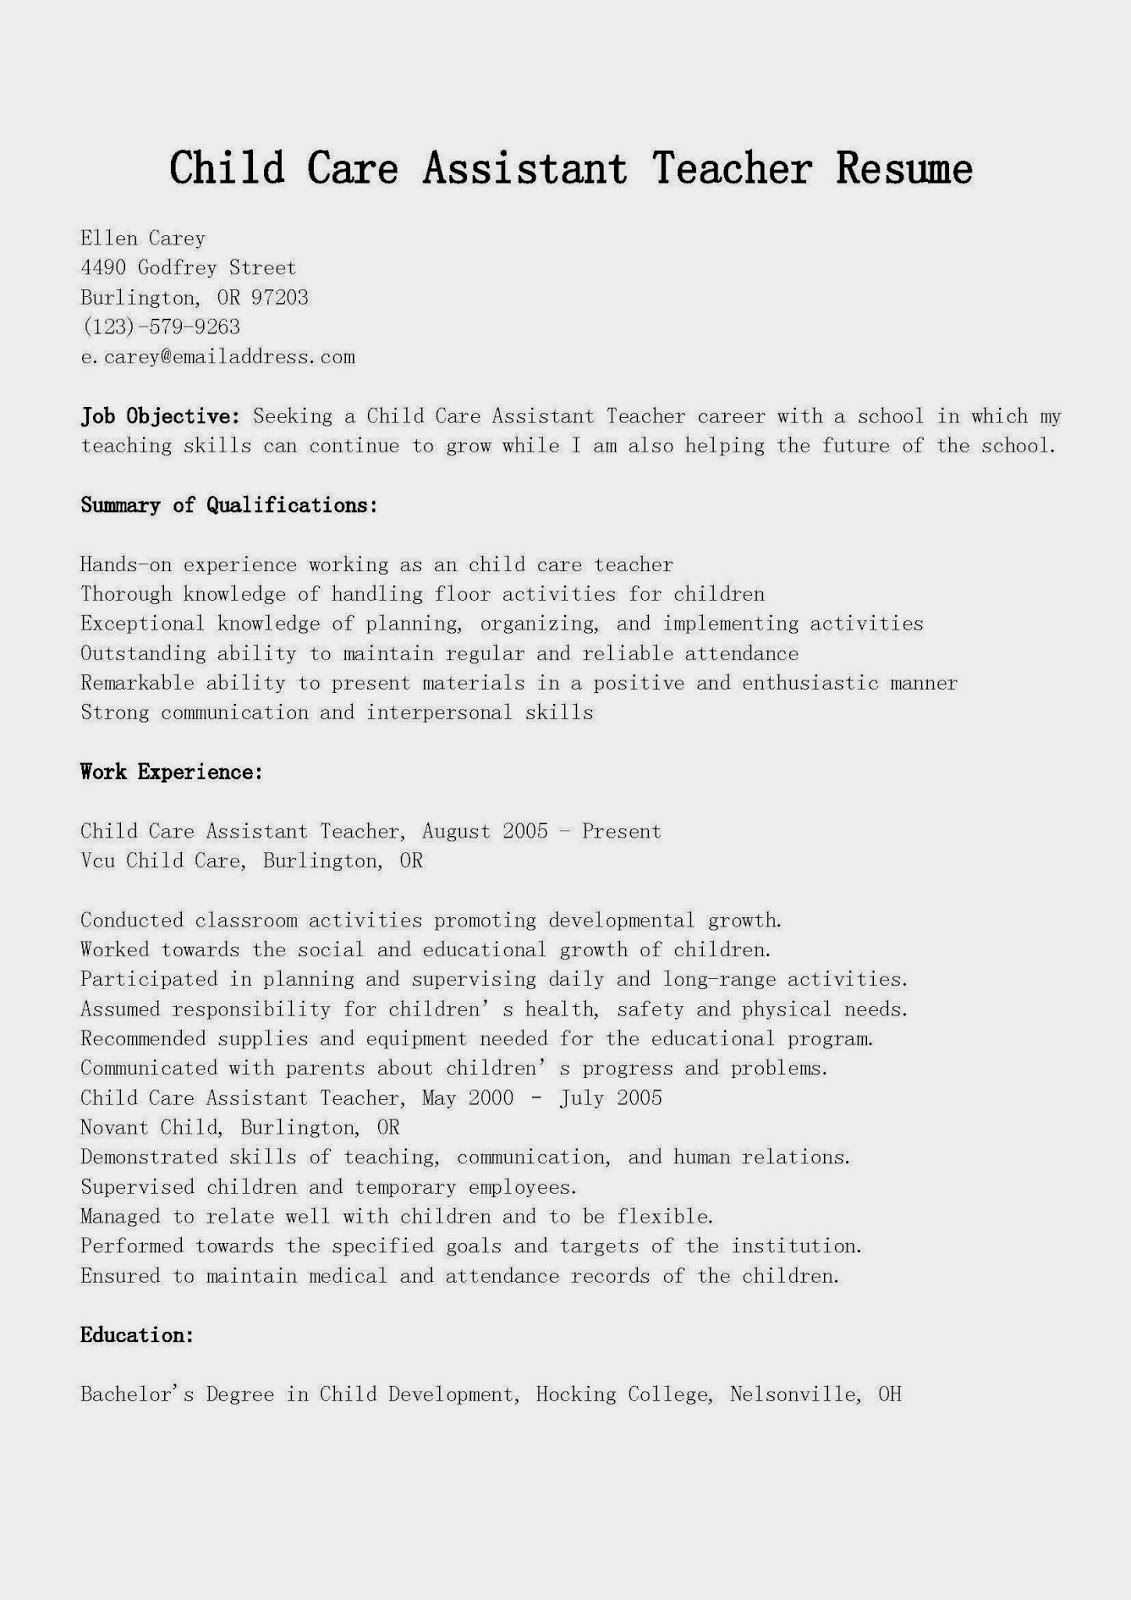 Sample Cover Letter For A Babysitting Job Samples With Resume Formt Examples Kickypad